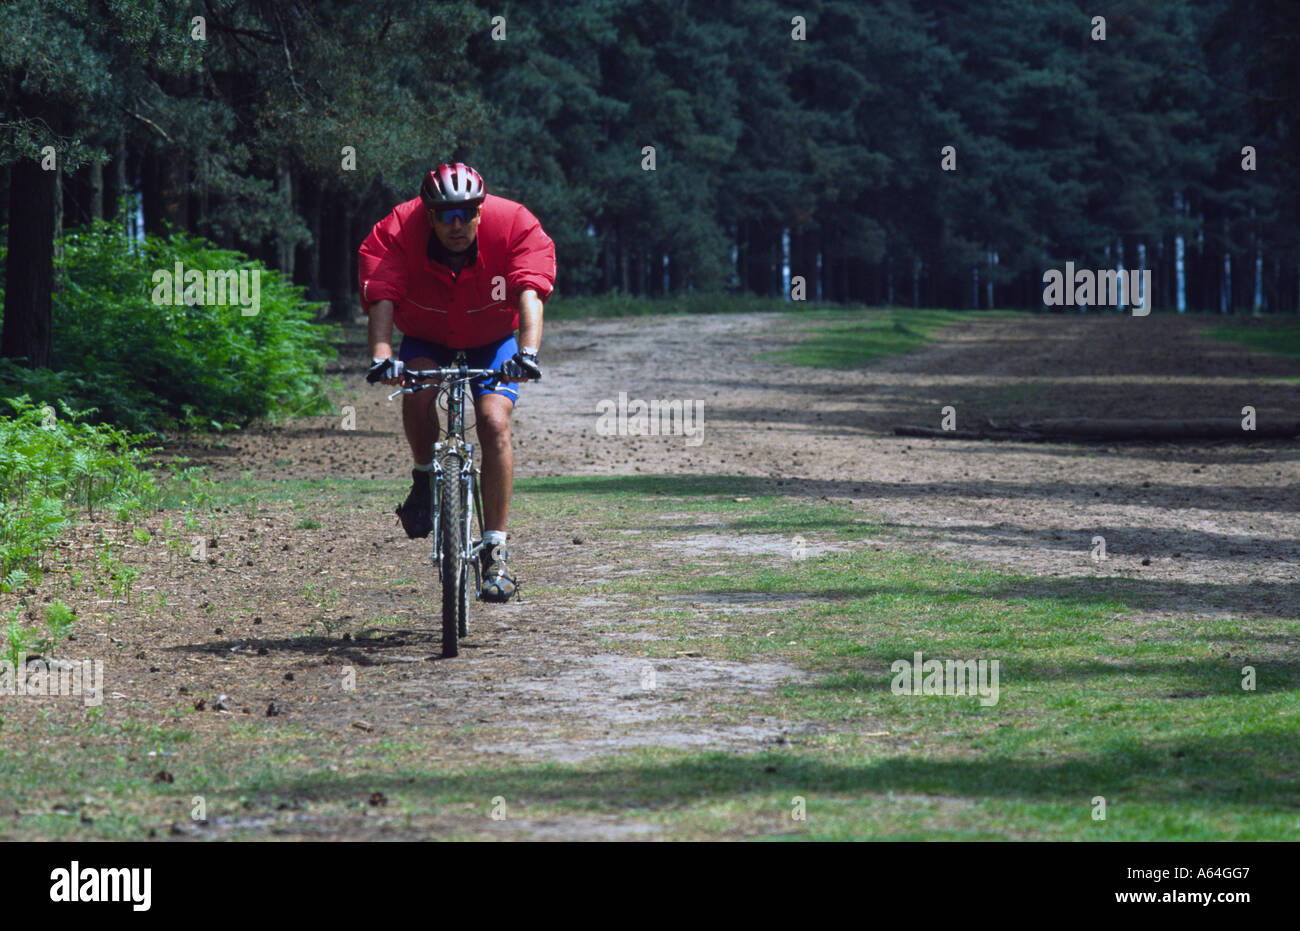 Mountain Biking at the bike park Brickhill Woods Woburn Sands forest Centre Parcs Stock Photo